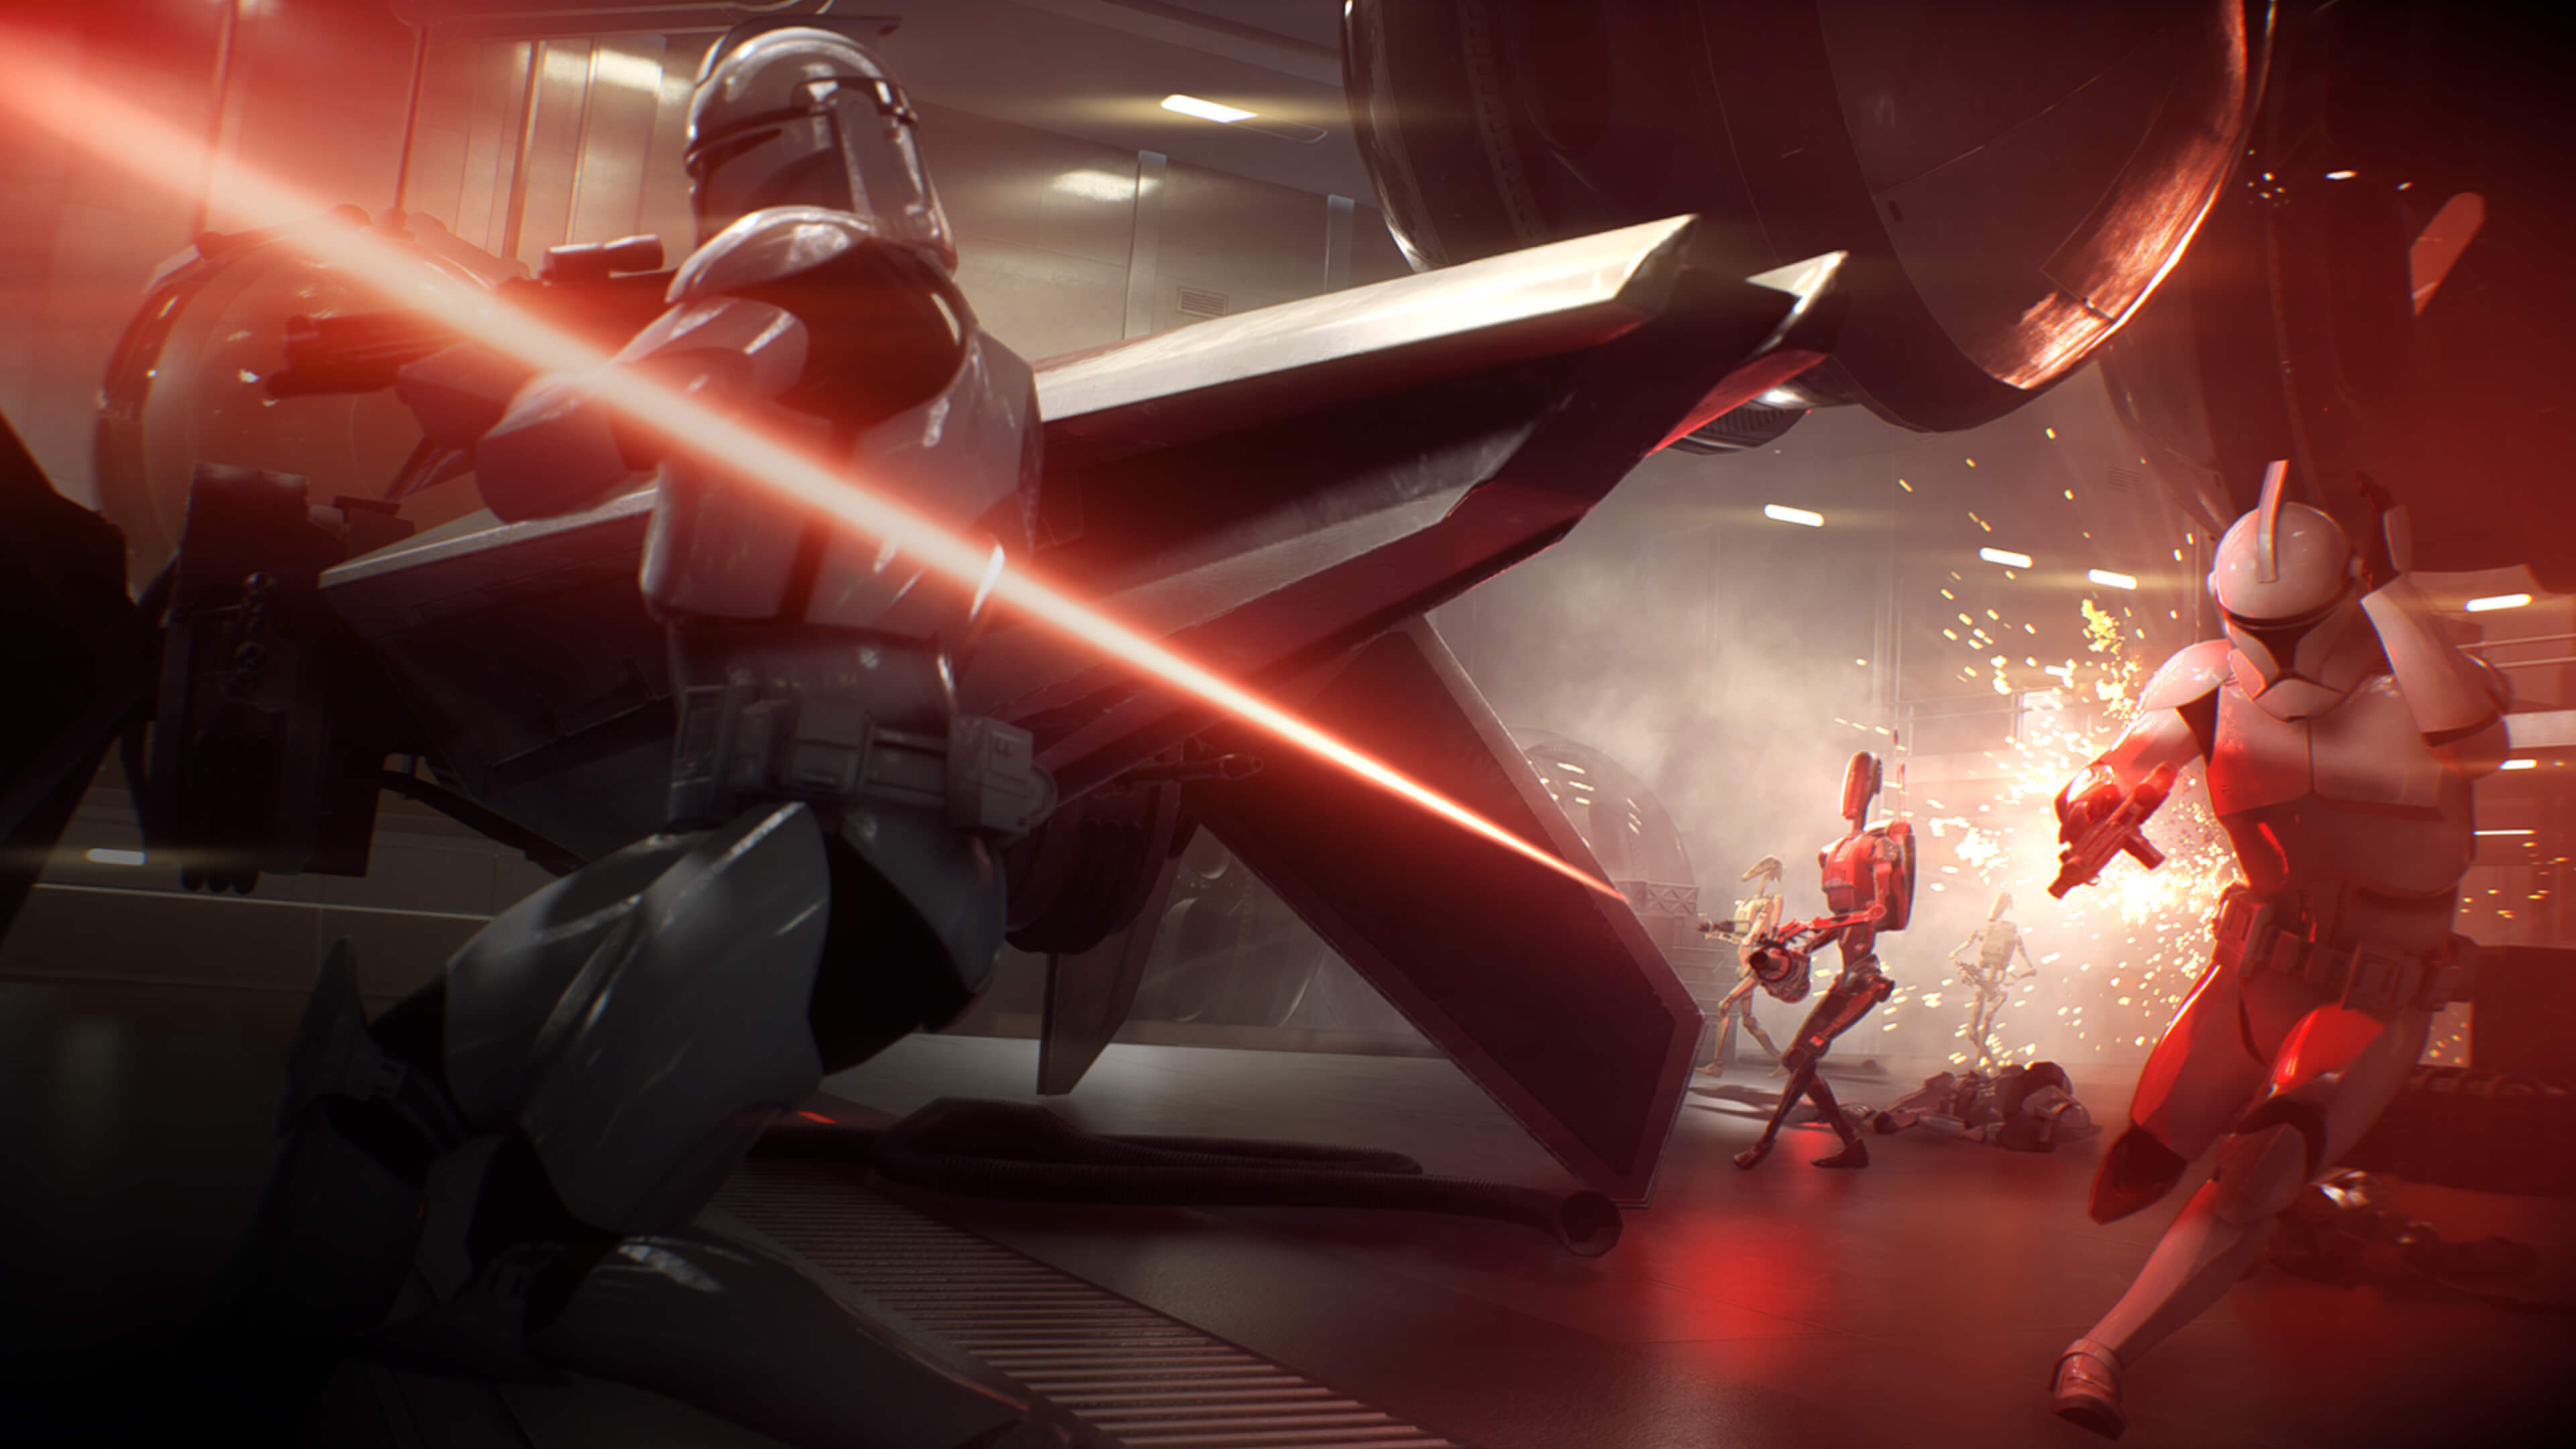 2560x1440 Star Wars Battlefront 2 Gameplay 1440p Resolution Hd 4k Wallpapers Images Backgrounds Photos And Pictures